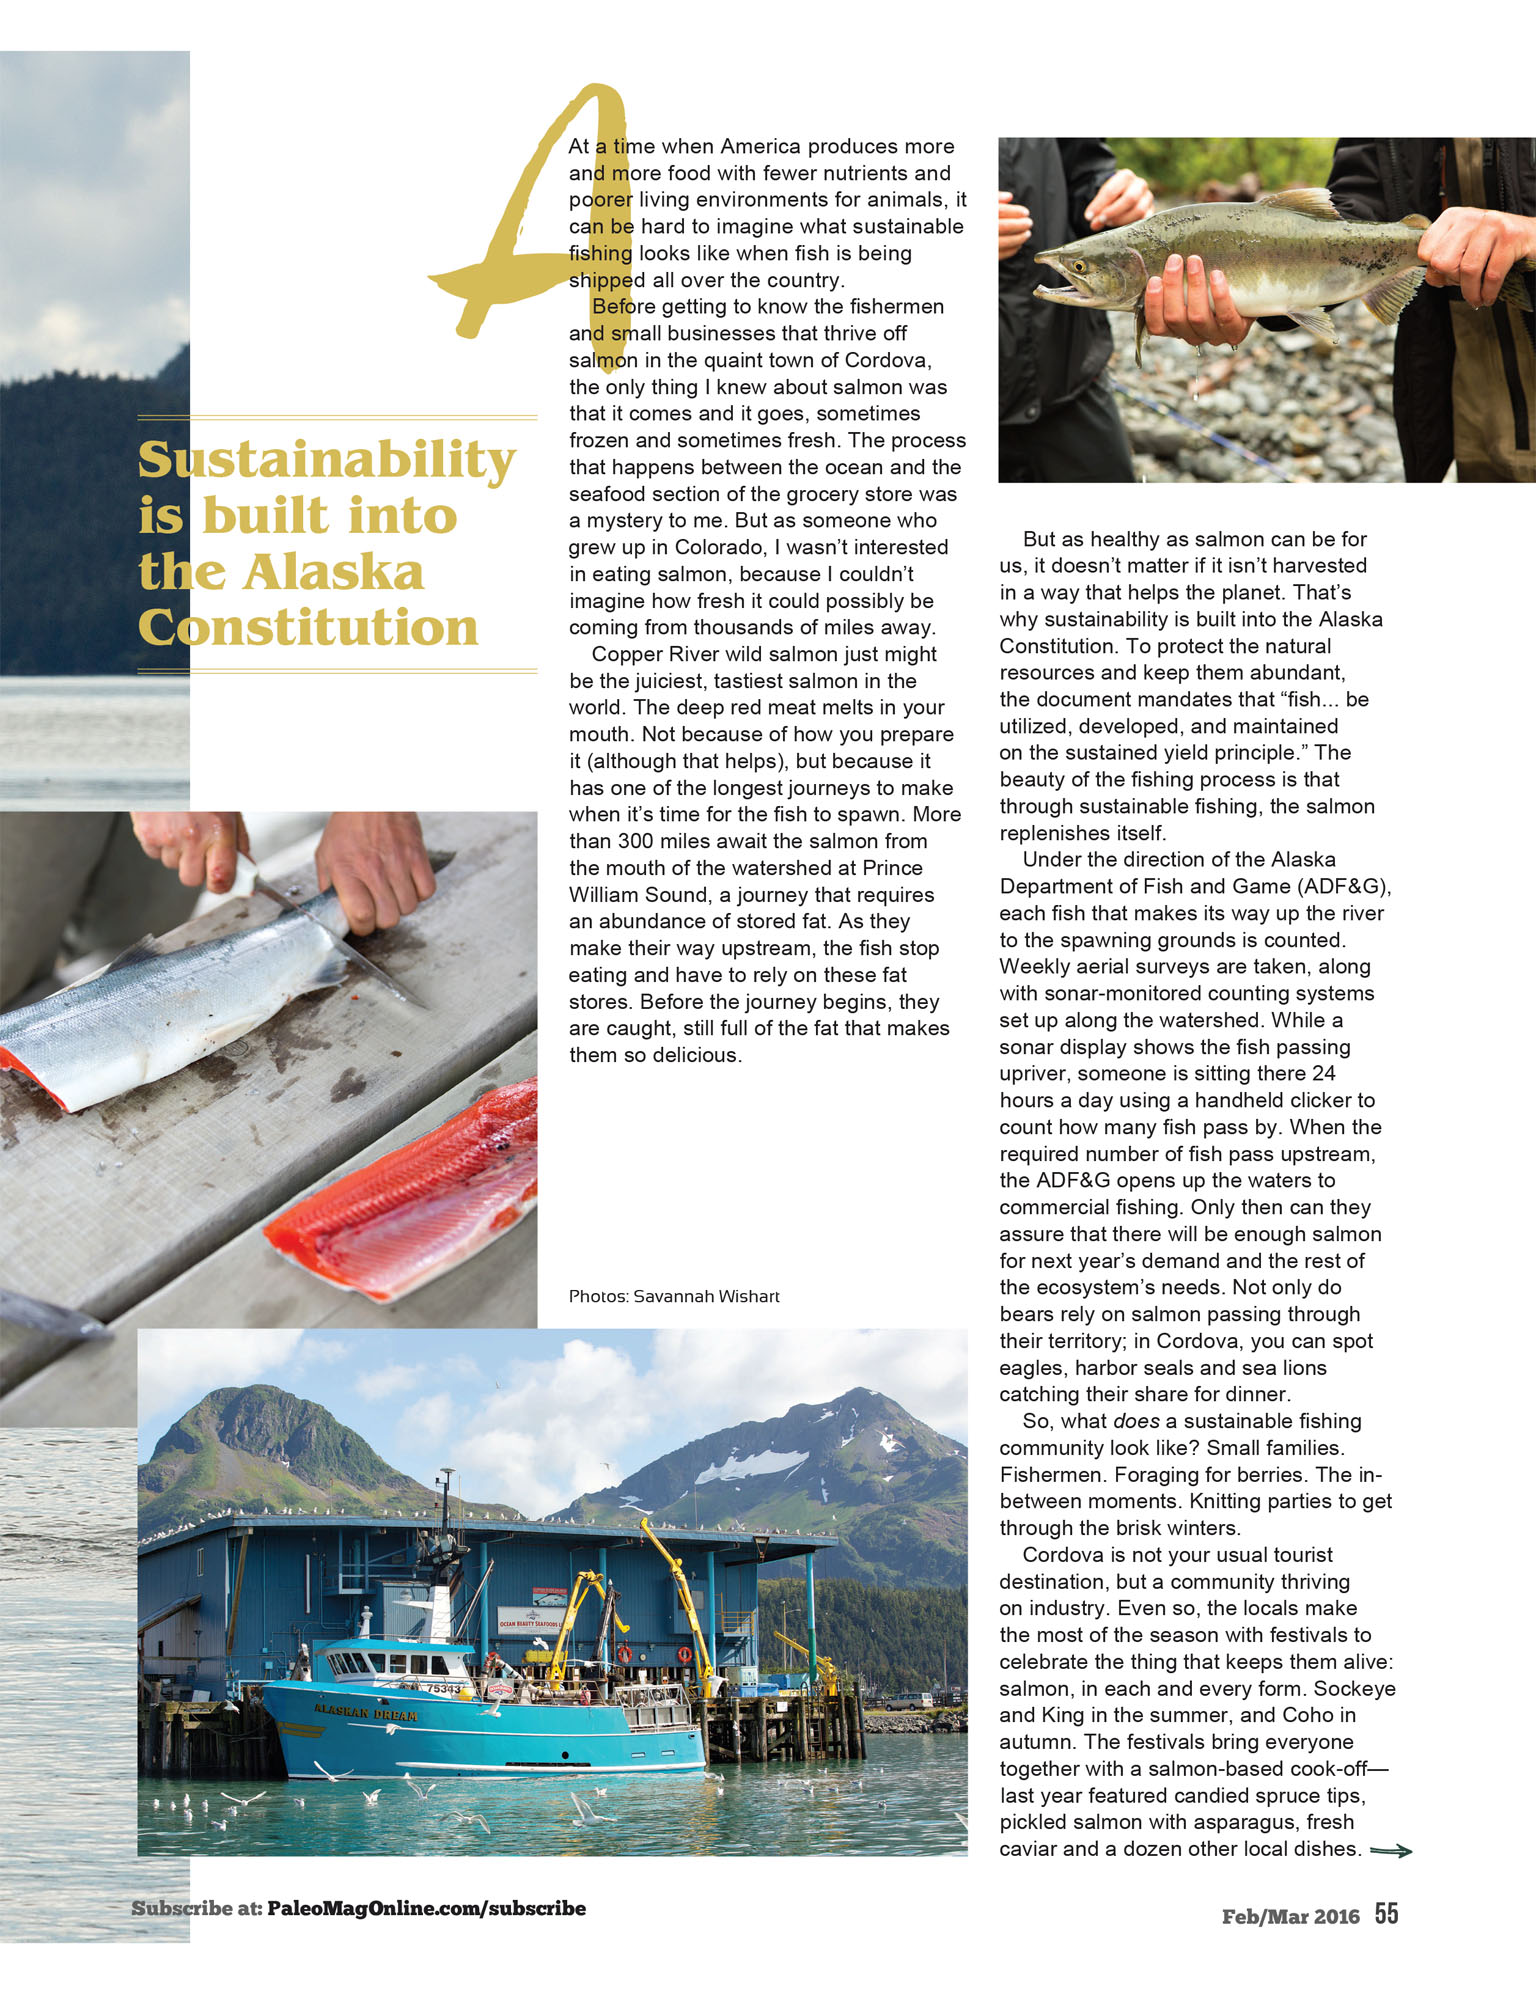 Article featuring Copper River Wild, Cordova Alaska for Paleo Magazine